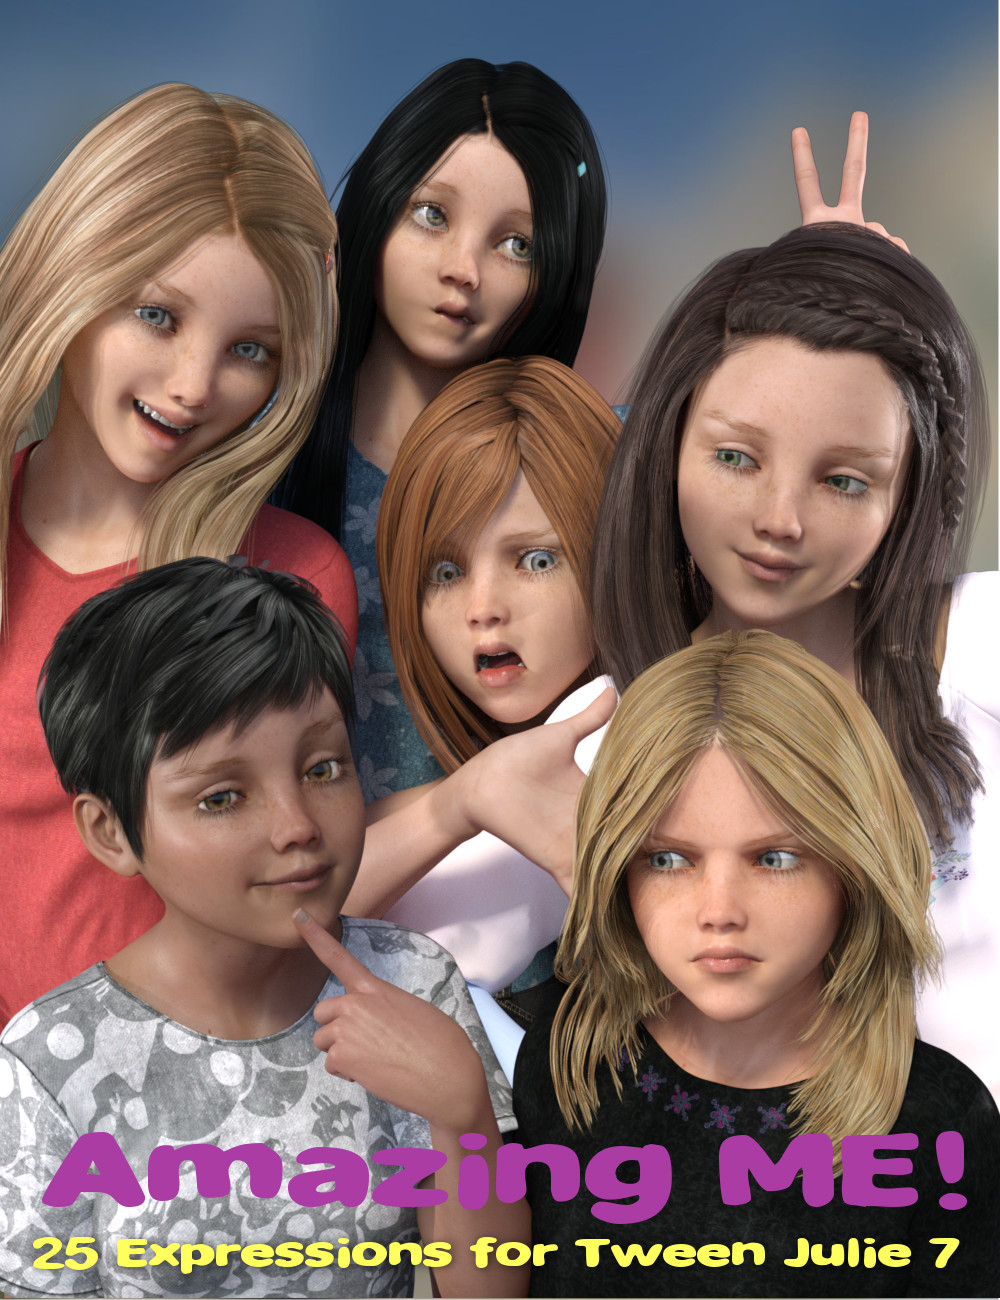 Amazing ME! 25 Expressions for Tween Julie 7 by: Sharktooth, 3D Models by Daz 3D